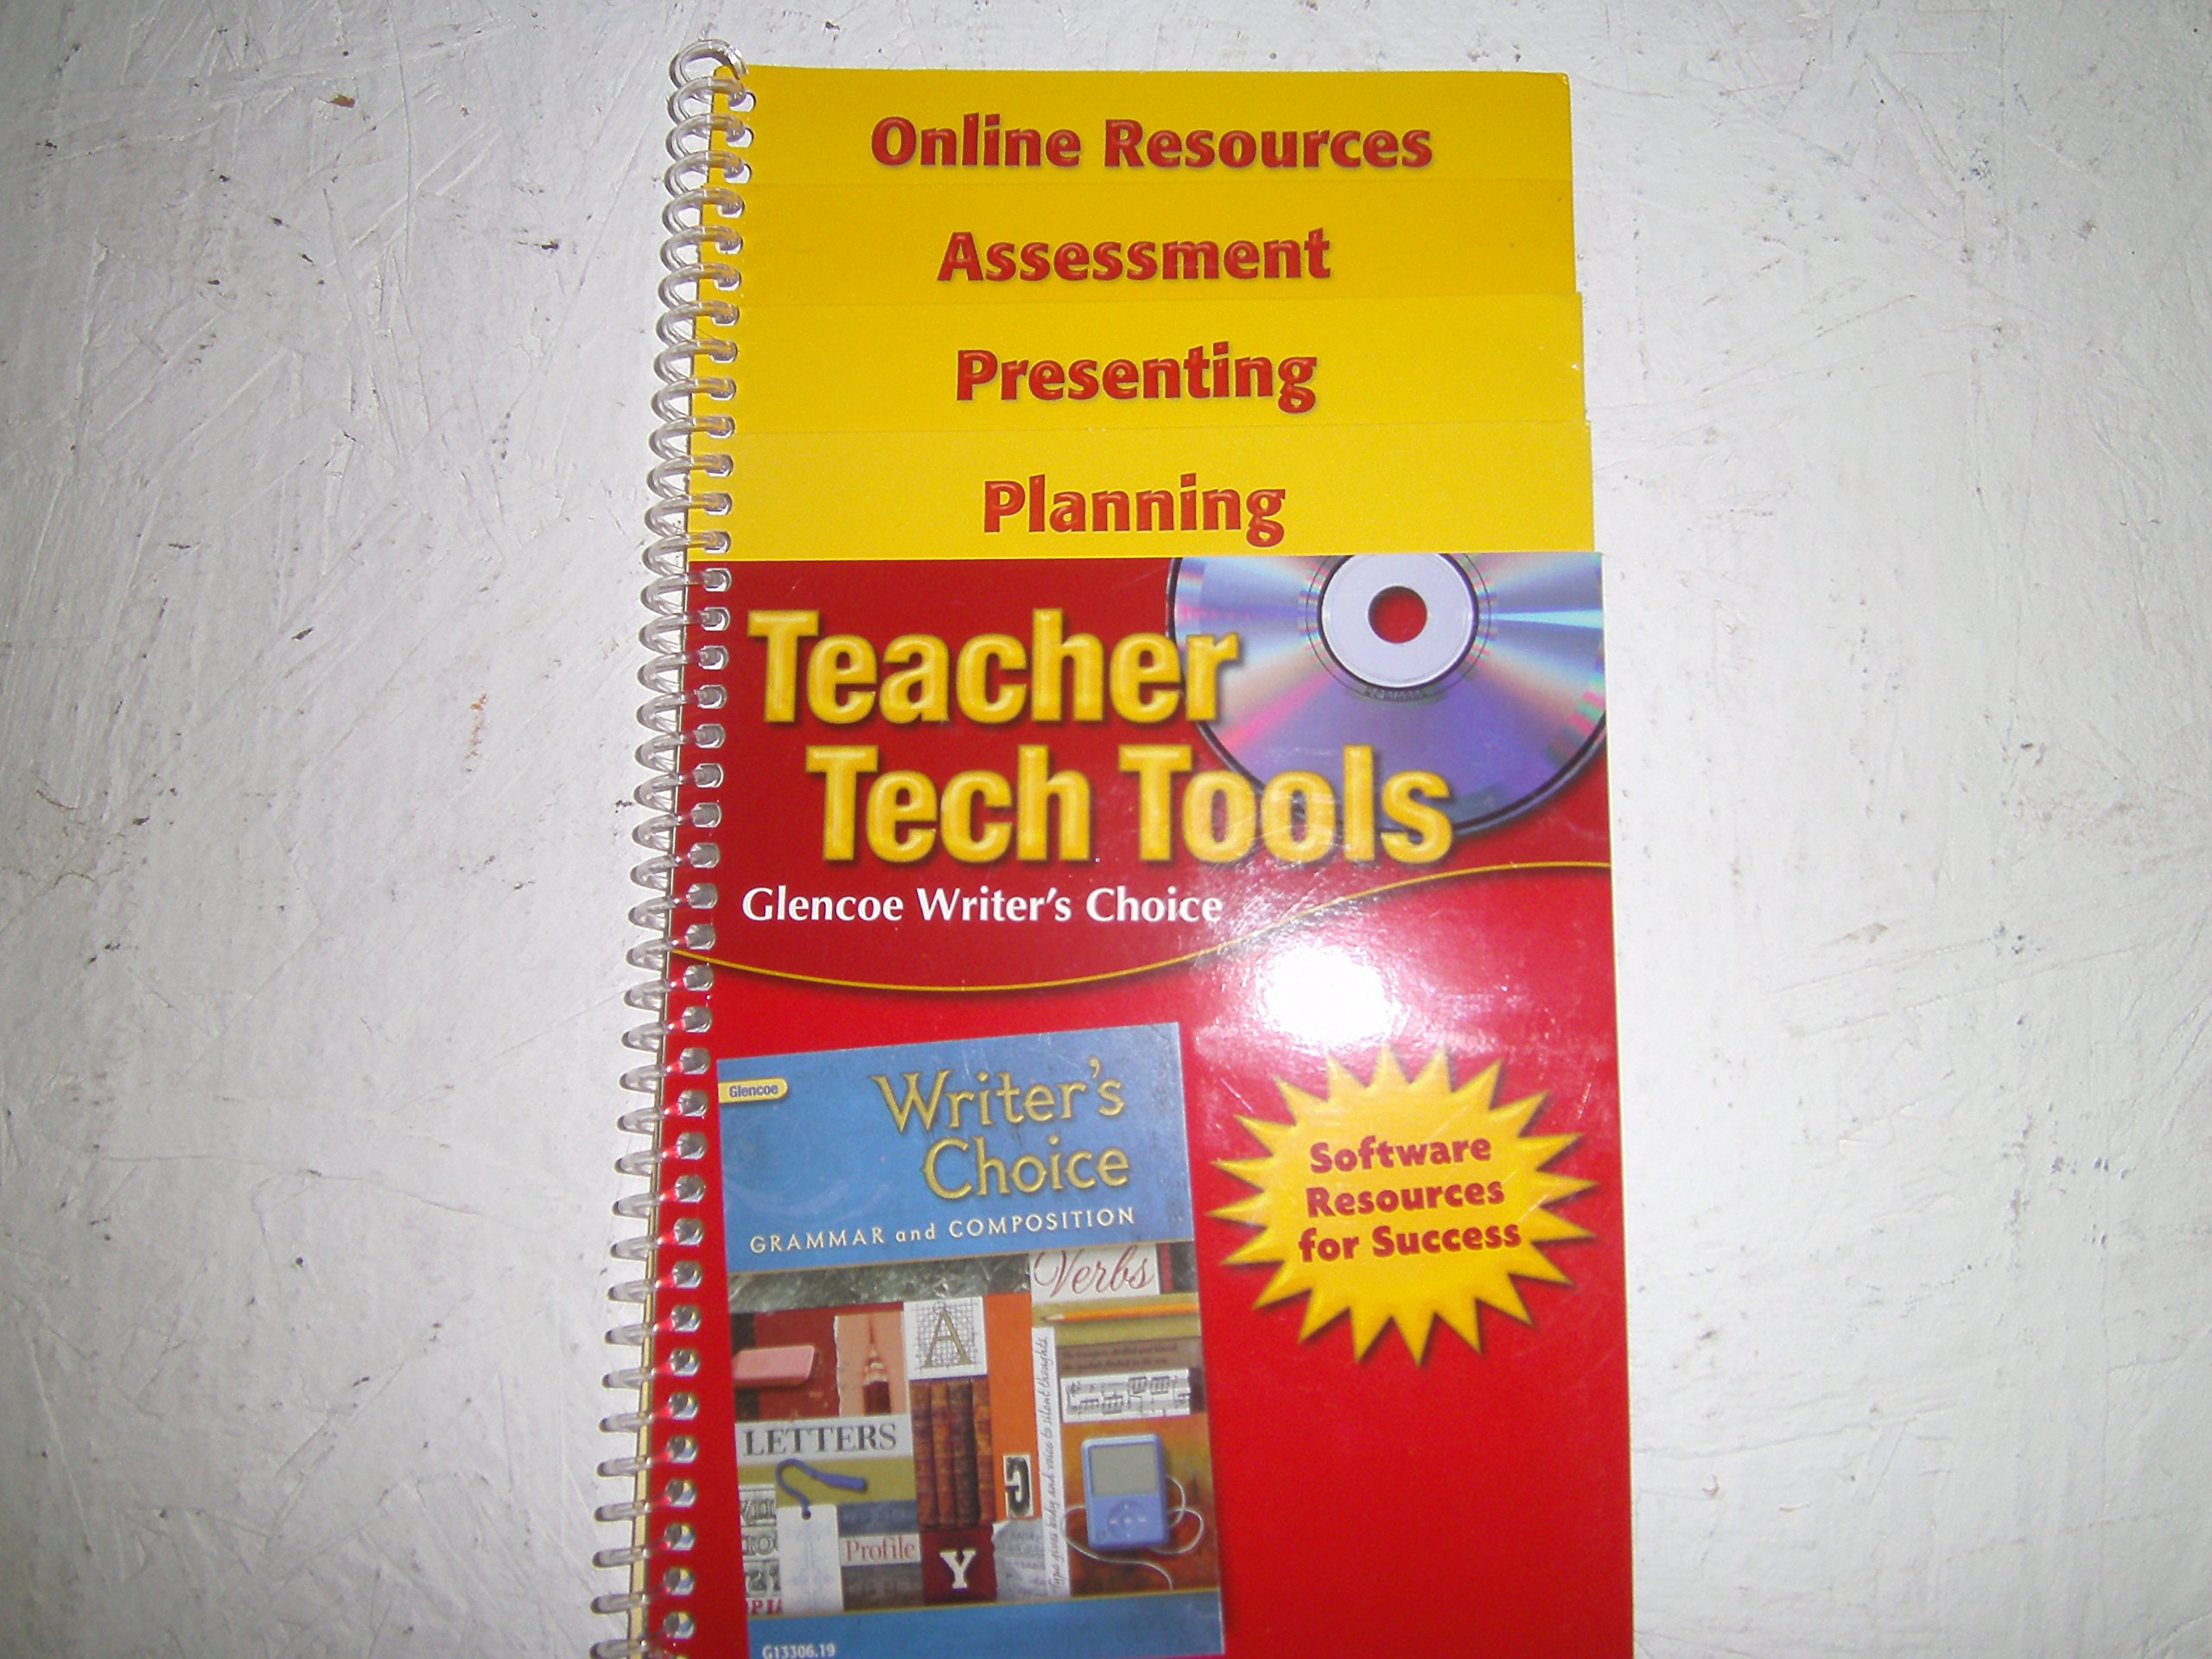 Writer's Choice-Grammar And Composition, Grade 6: Teacher Tech Tools CD-ROM Package-Set Of Three CD-ROMS (2009 Copyright) ebook